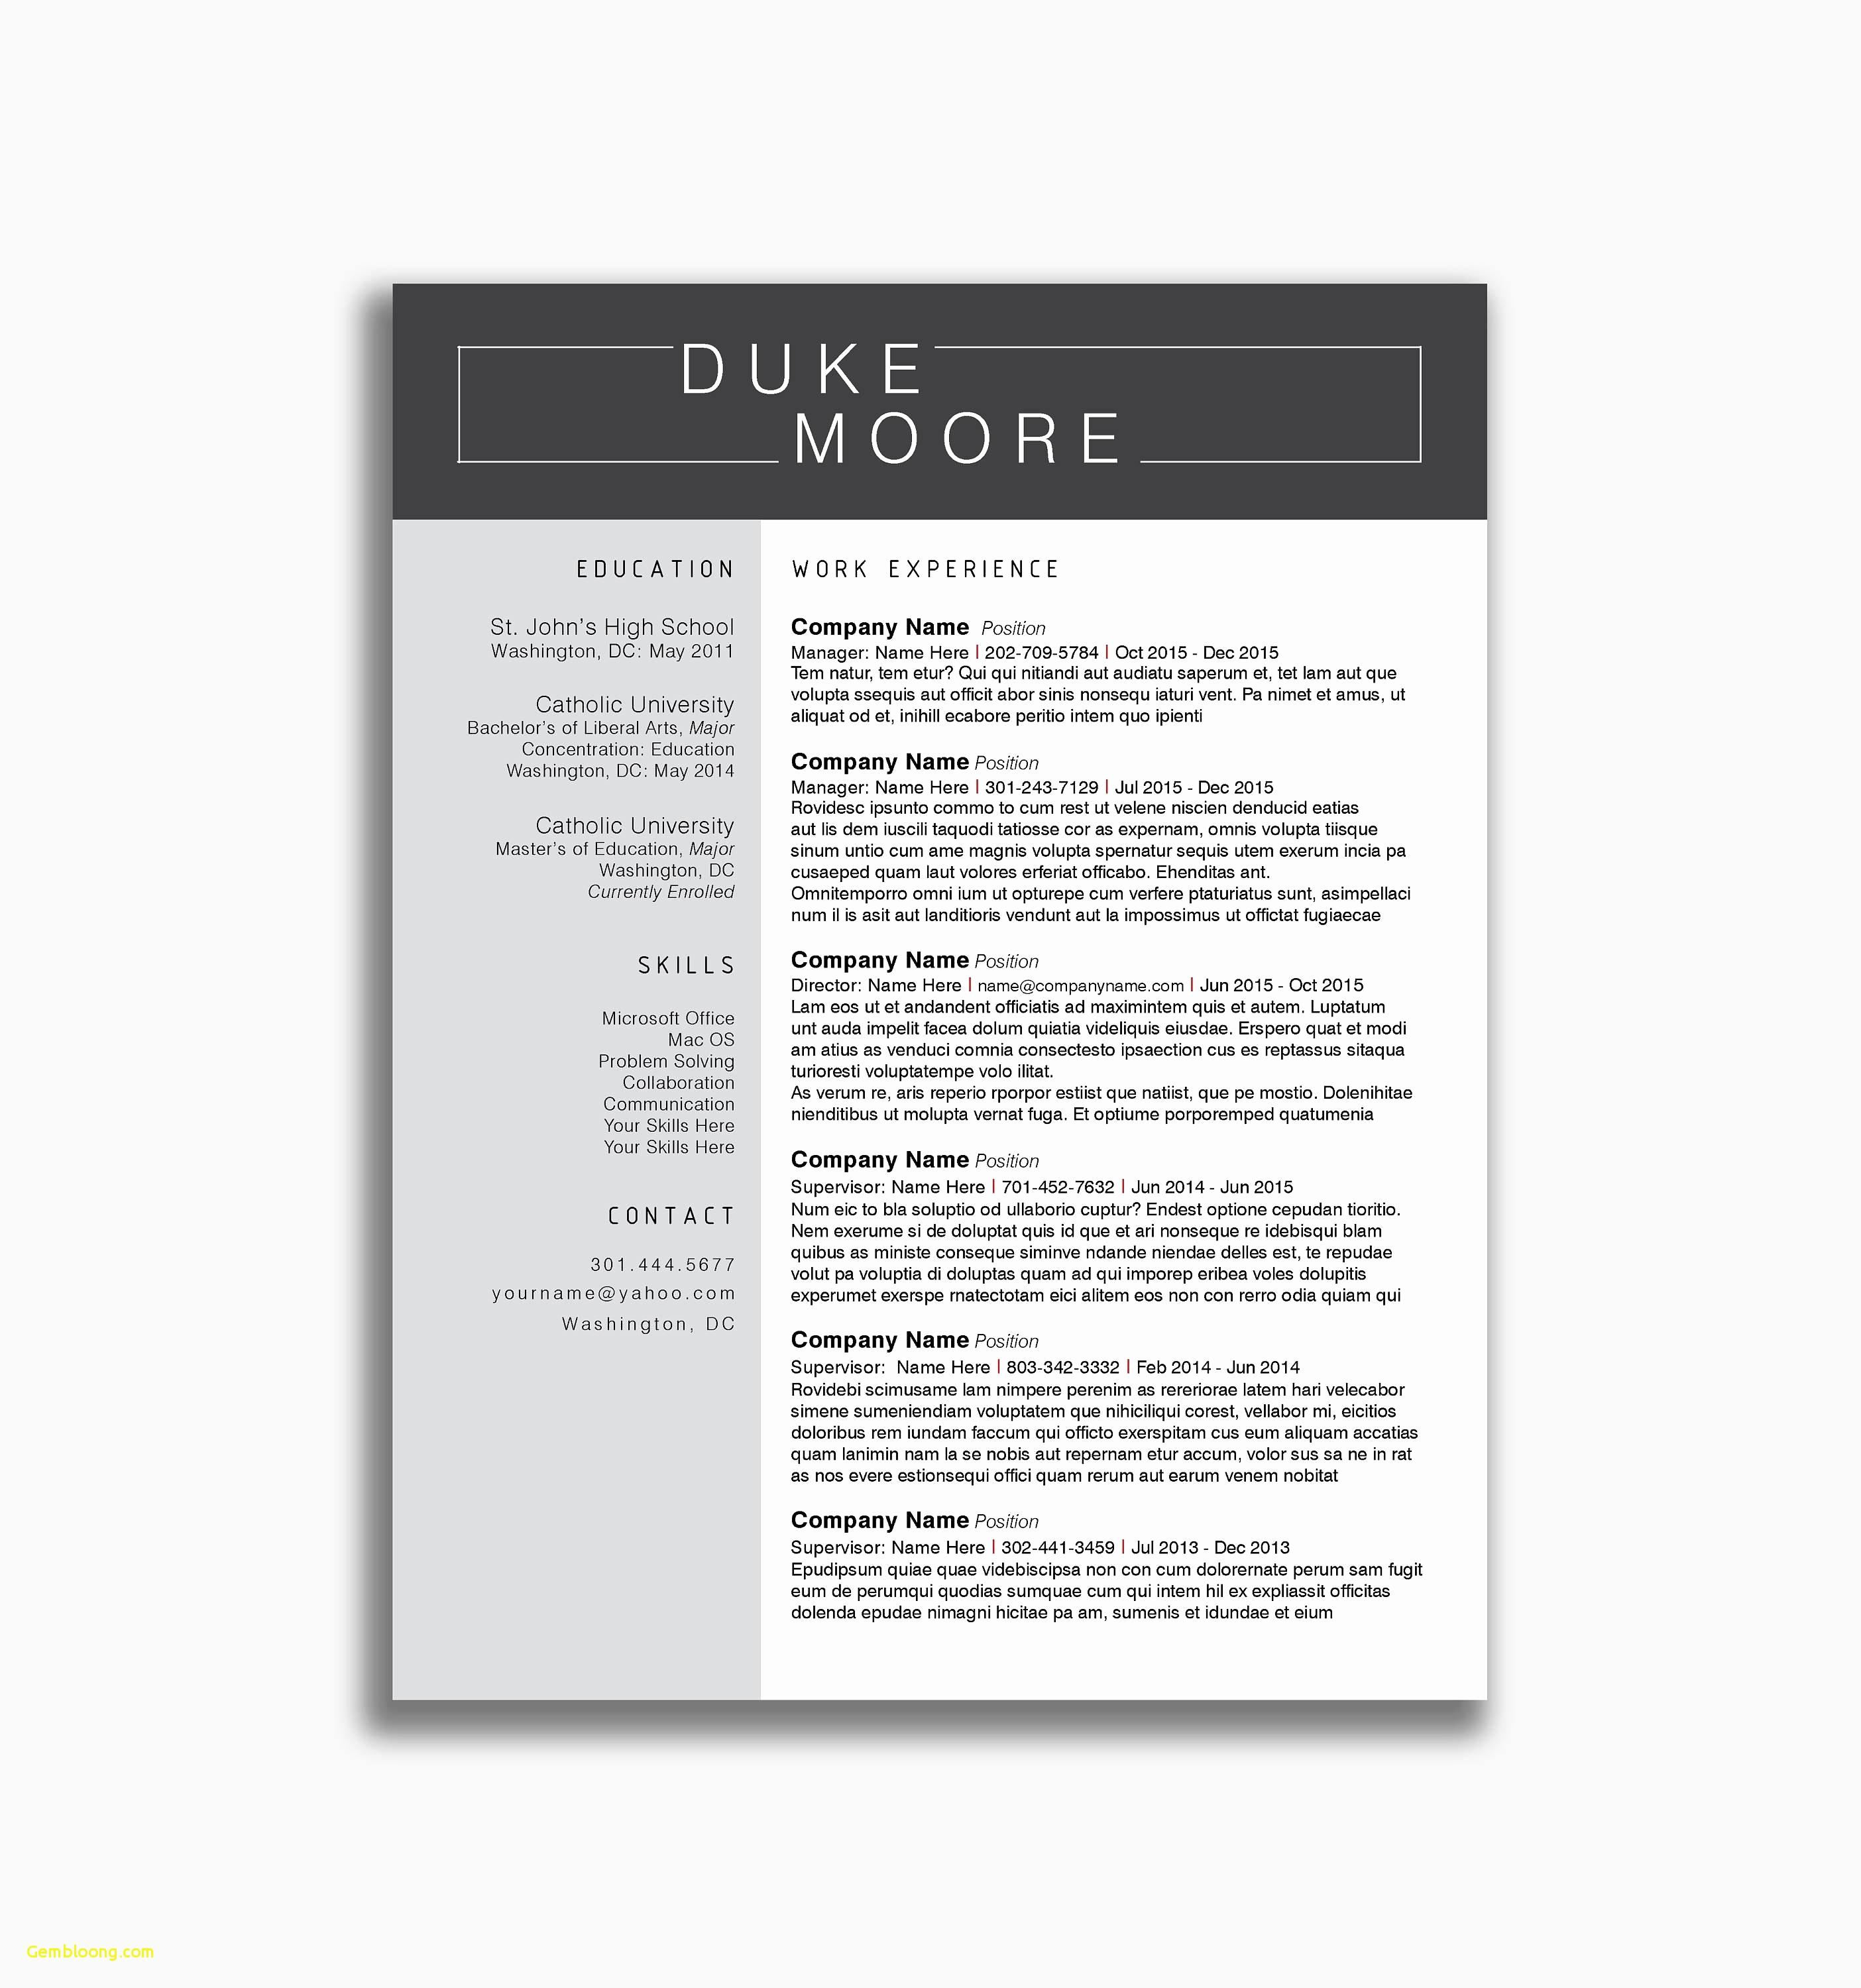 Etsy Resume Template - Download Resume Template Beautiful Law Student Resume Template Best